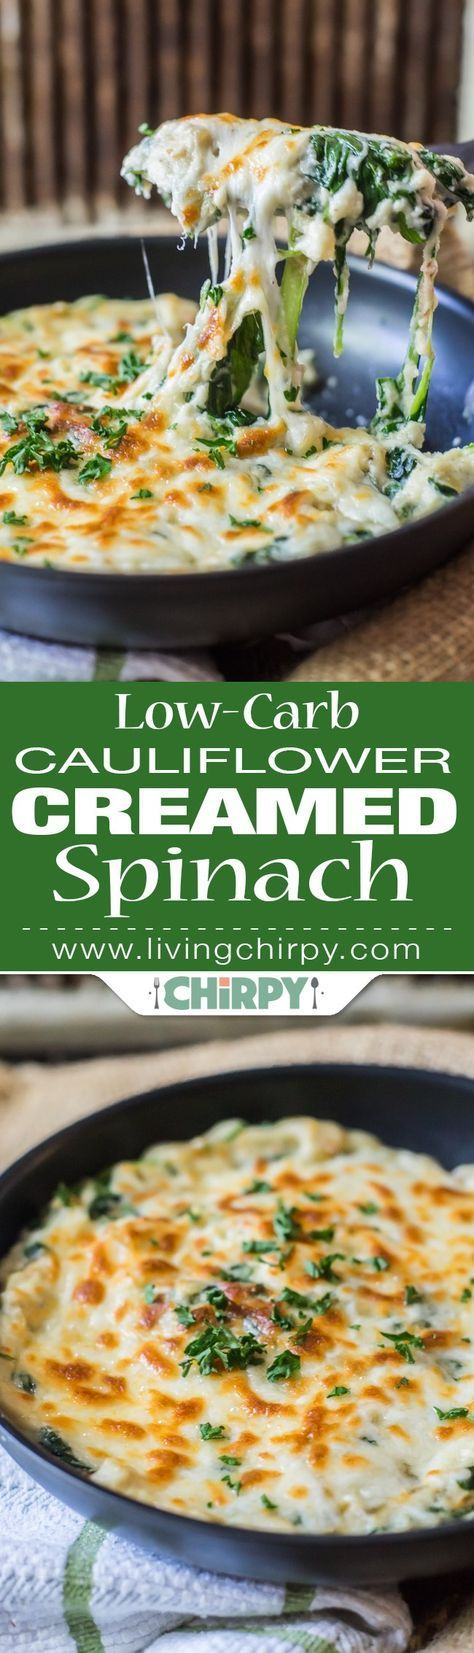 Low-Carb Cauliflower Creamed Spinach